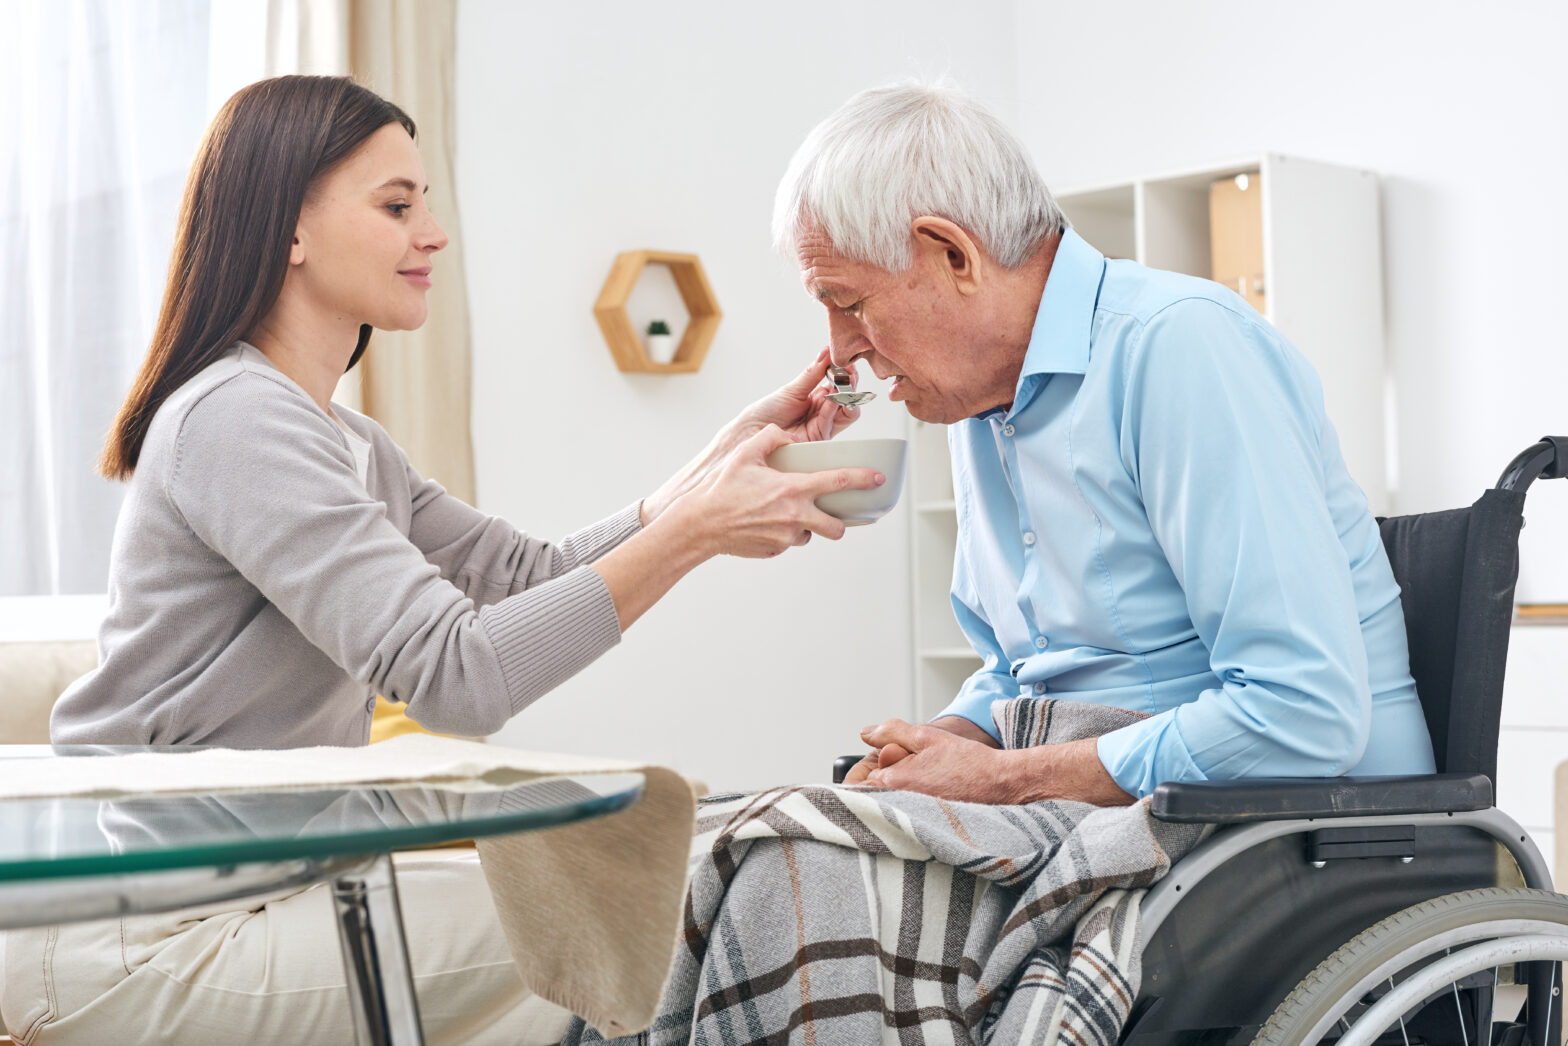 Young Social Worker Holding Bowl With Soup And Spoon By Mouth Of Senior Disable Man Sitting In Wheelchair While Helping Him With Eating 1568x1046